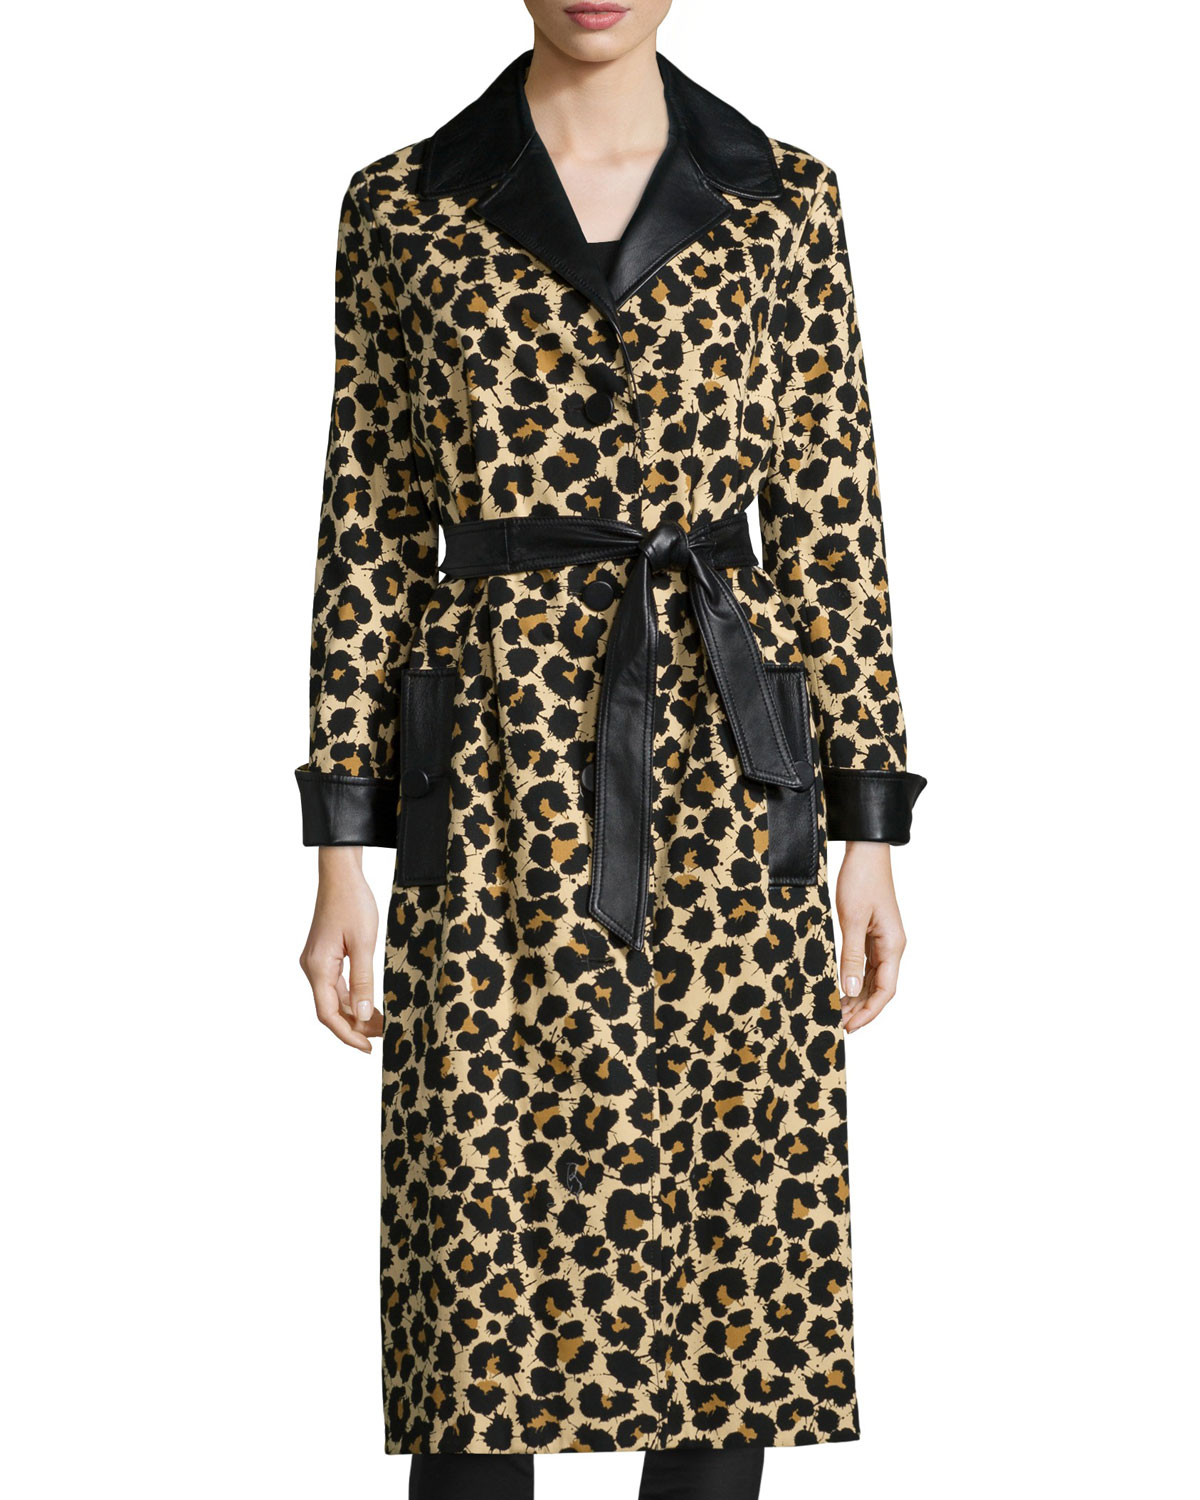 Leopard-Print Trenchcoat W/Leather Trim, Leopard Splatter